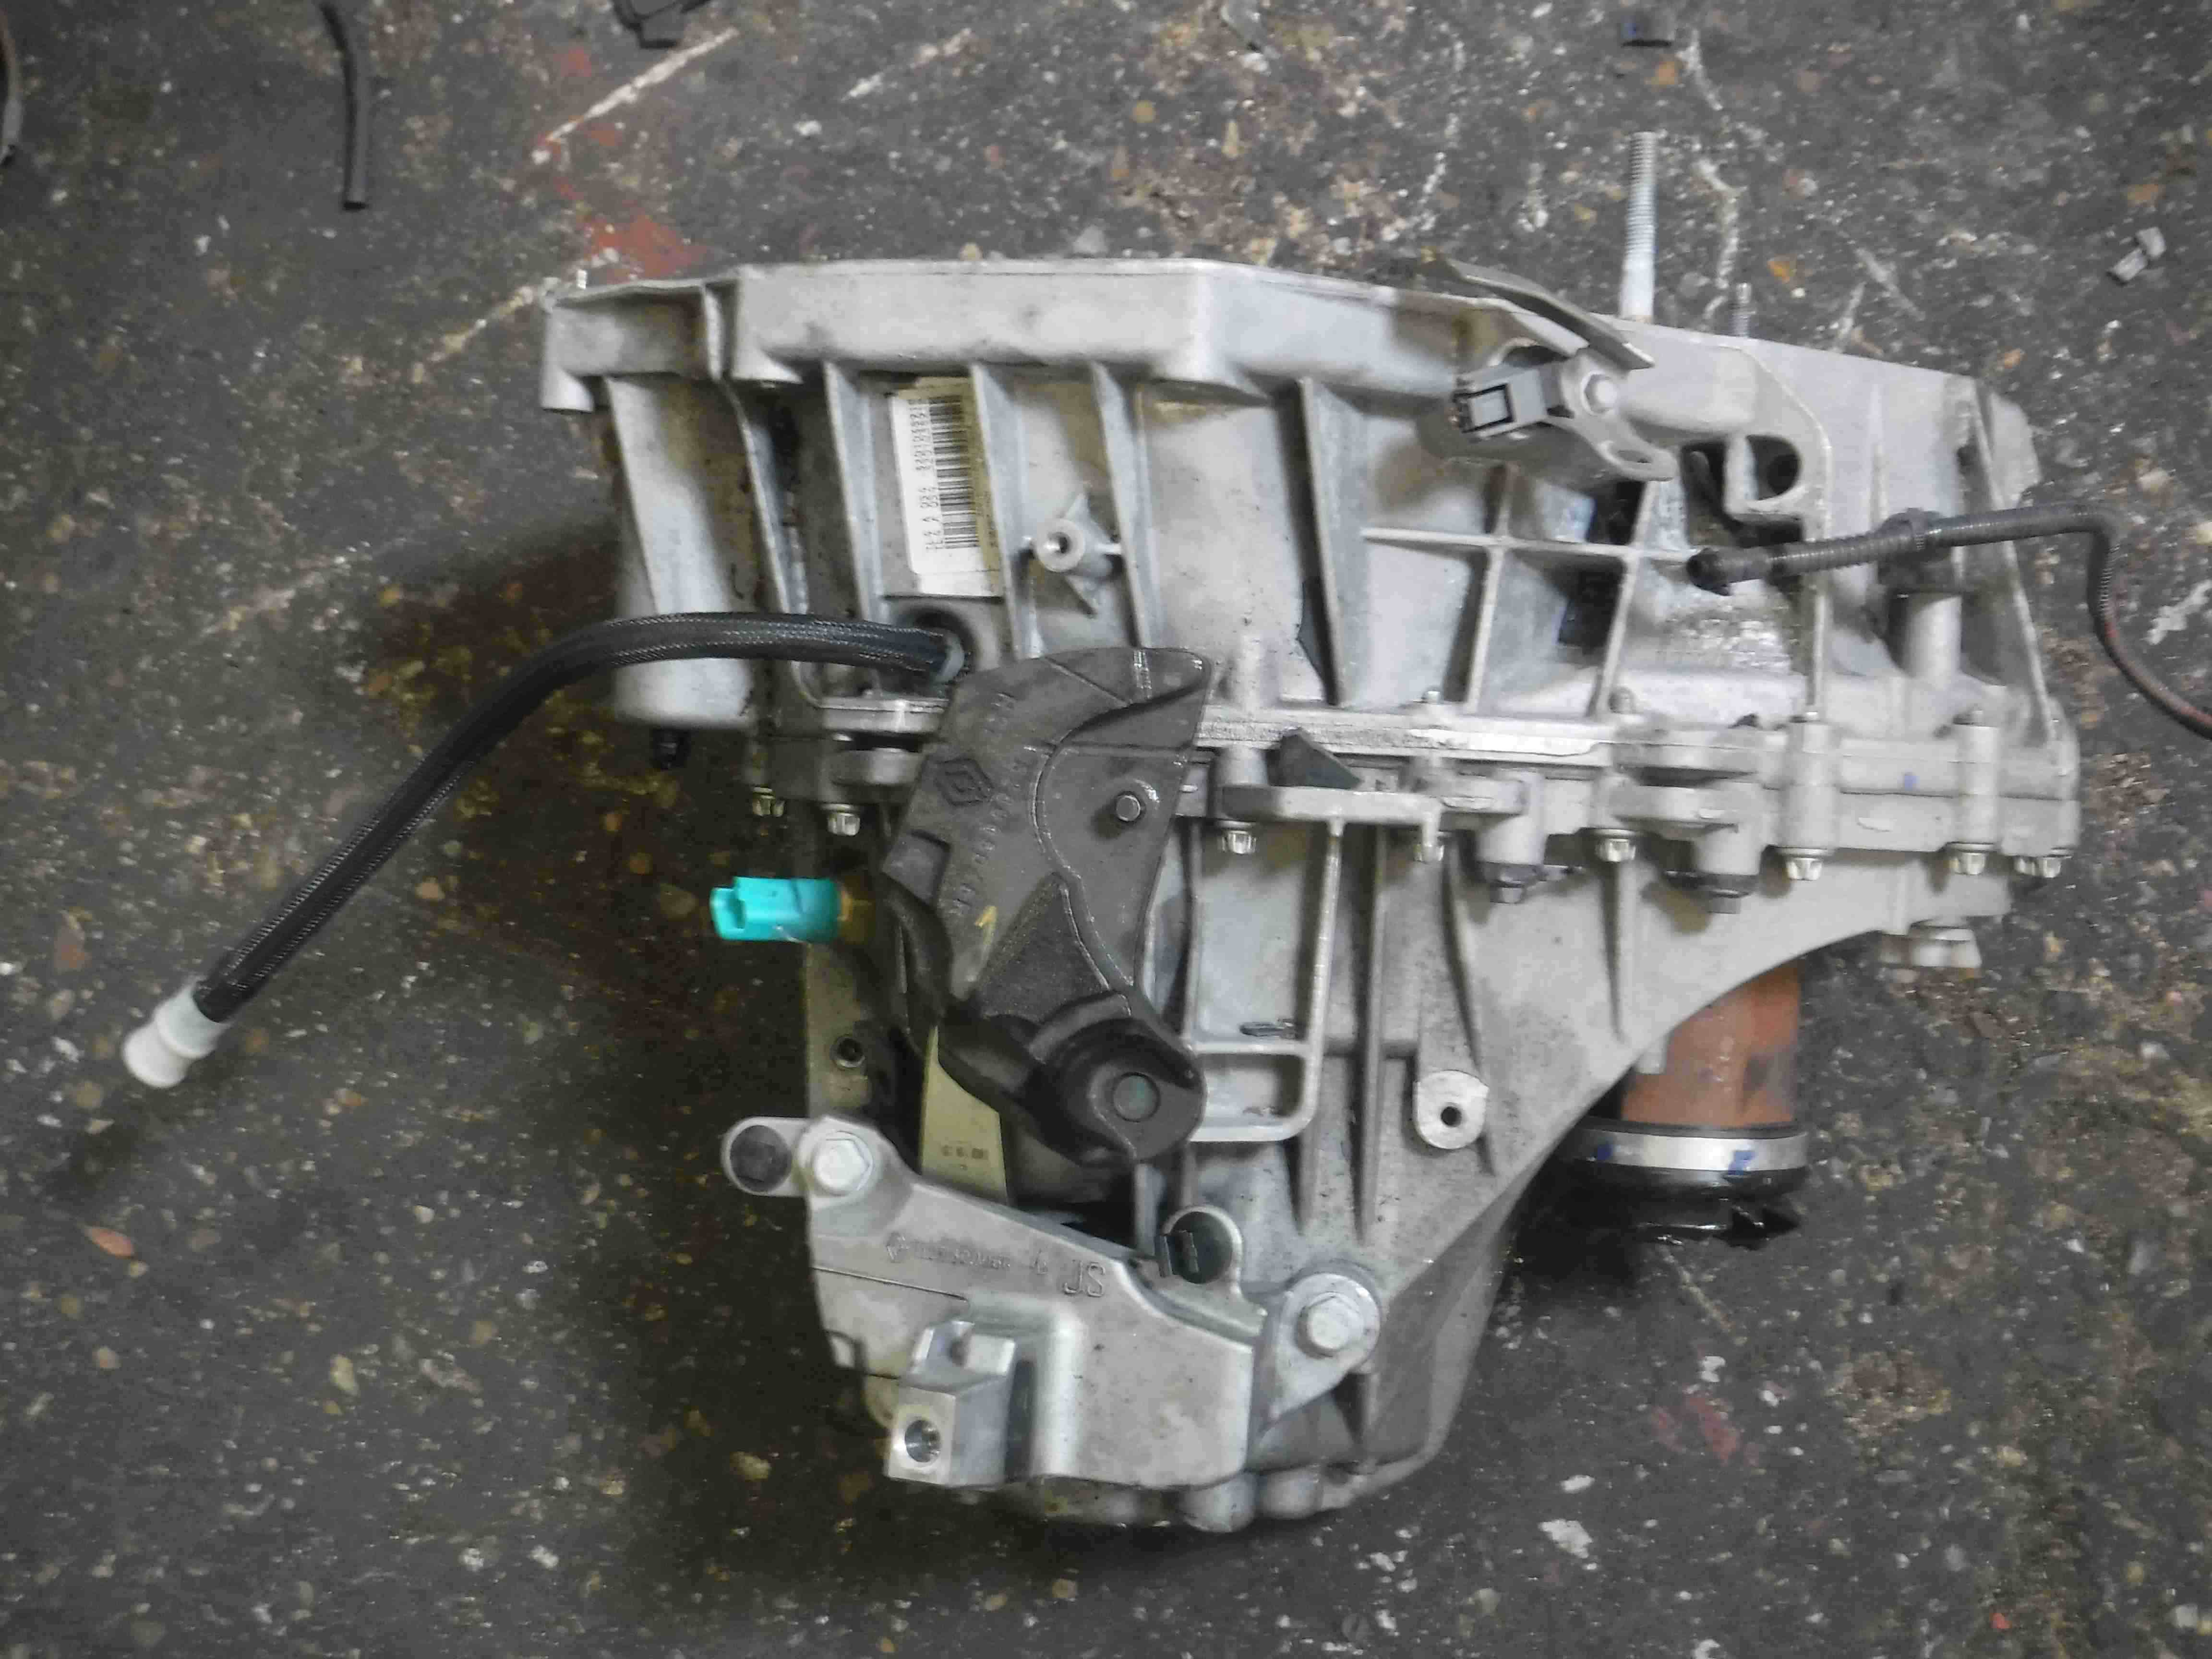 Renault Scenic MK3 2009-2016 1.5 dCi Gearbox TL4 054 6 Speed TL4054